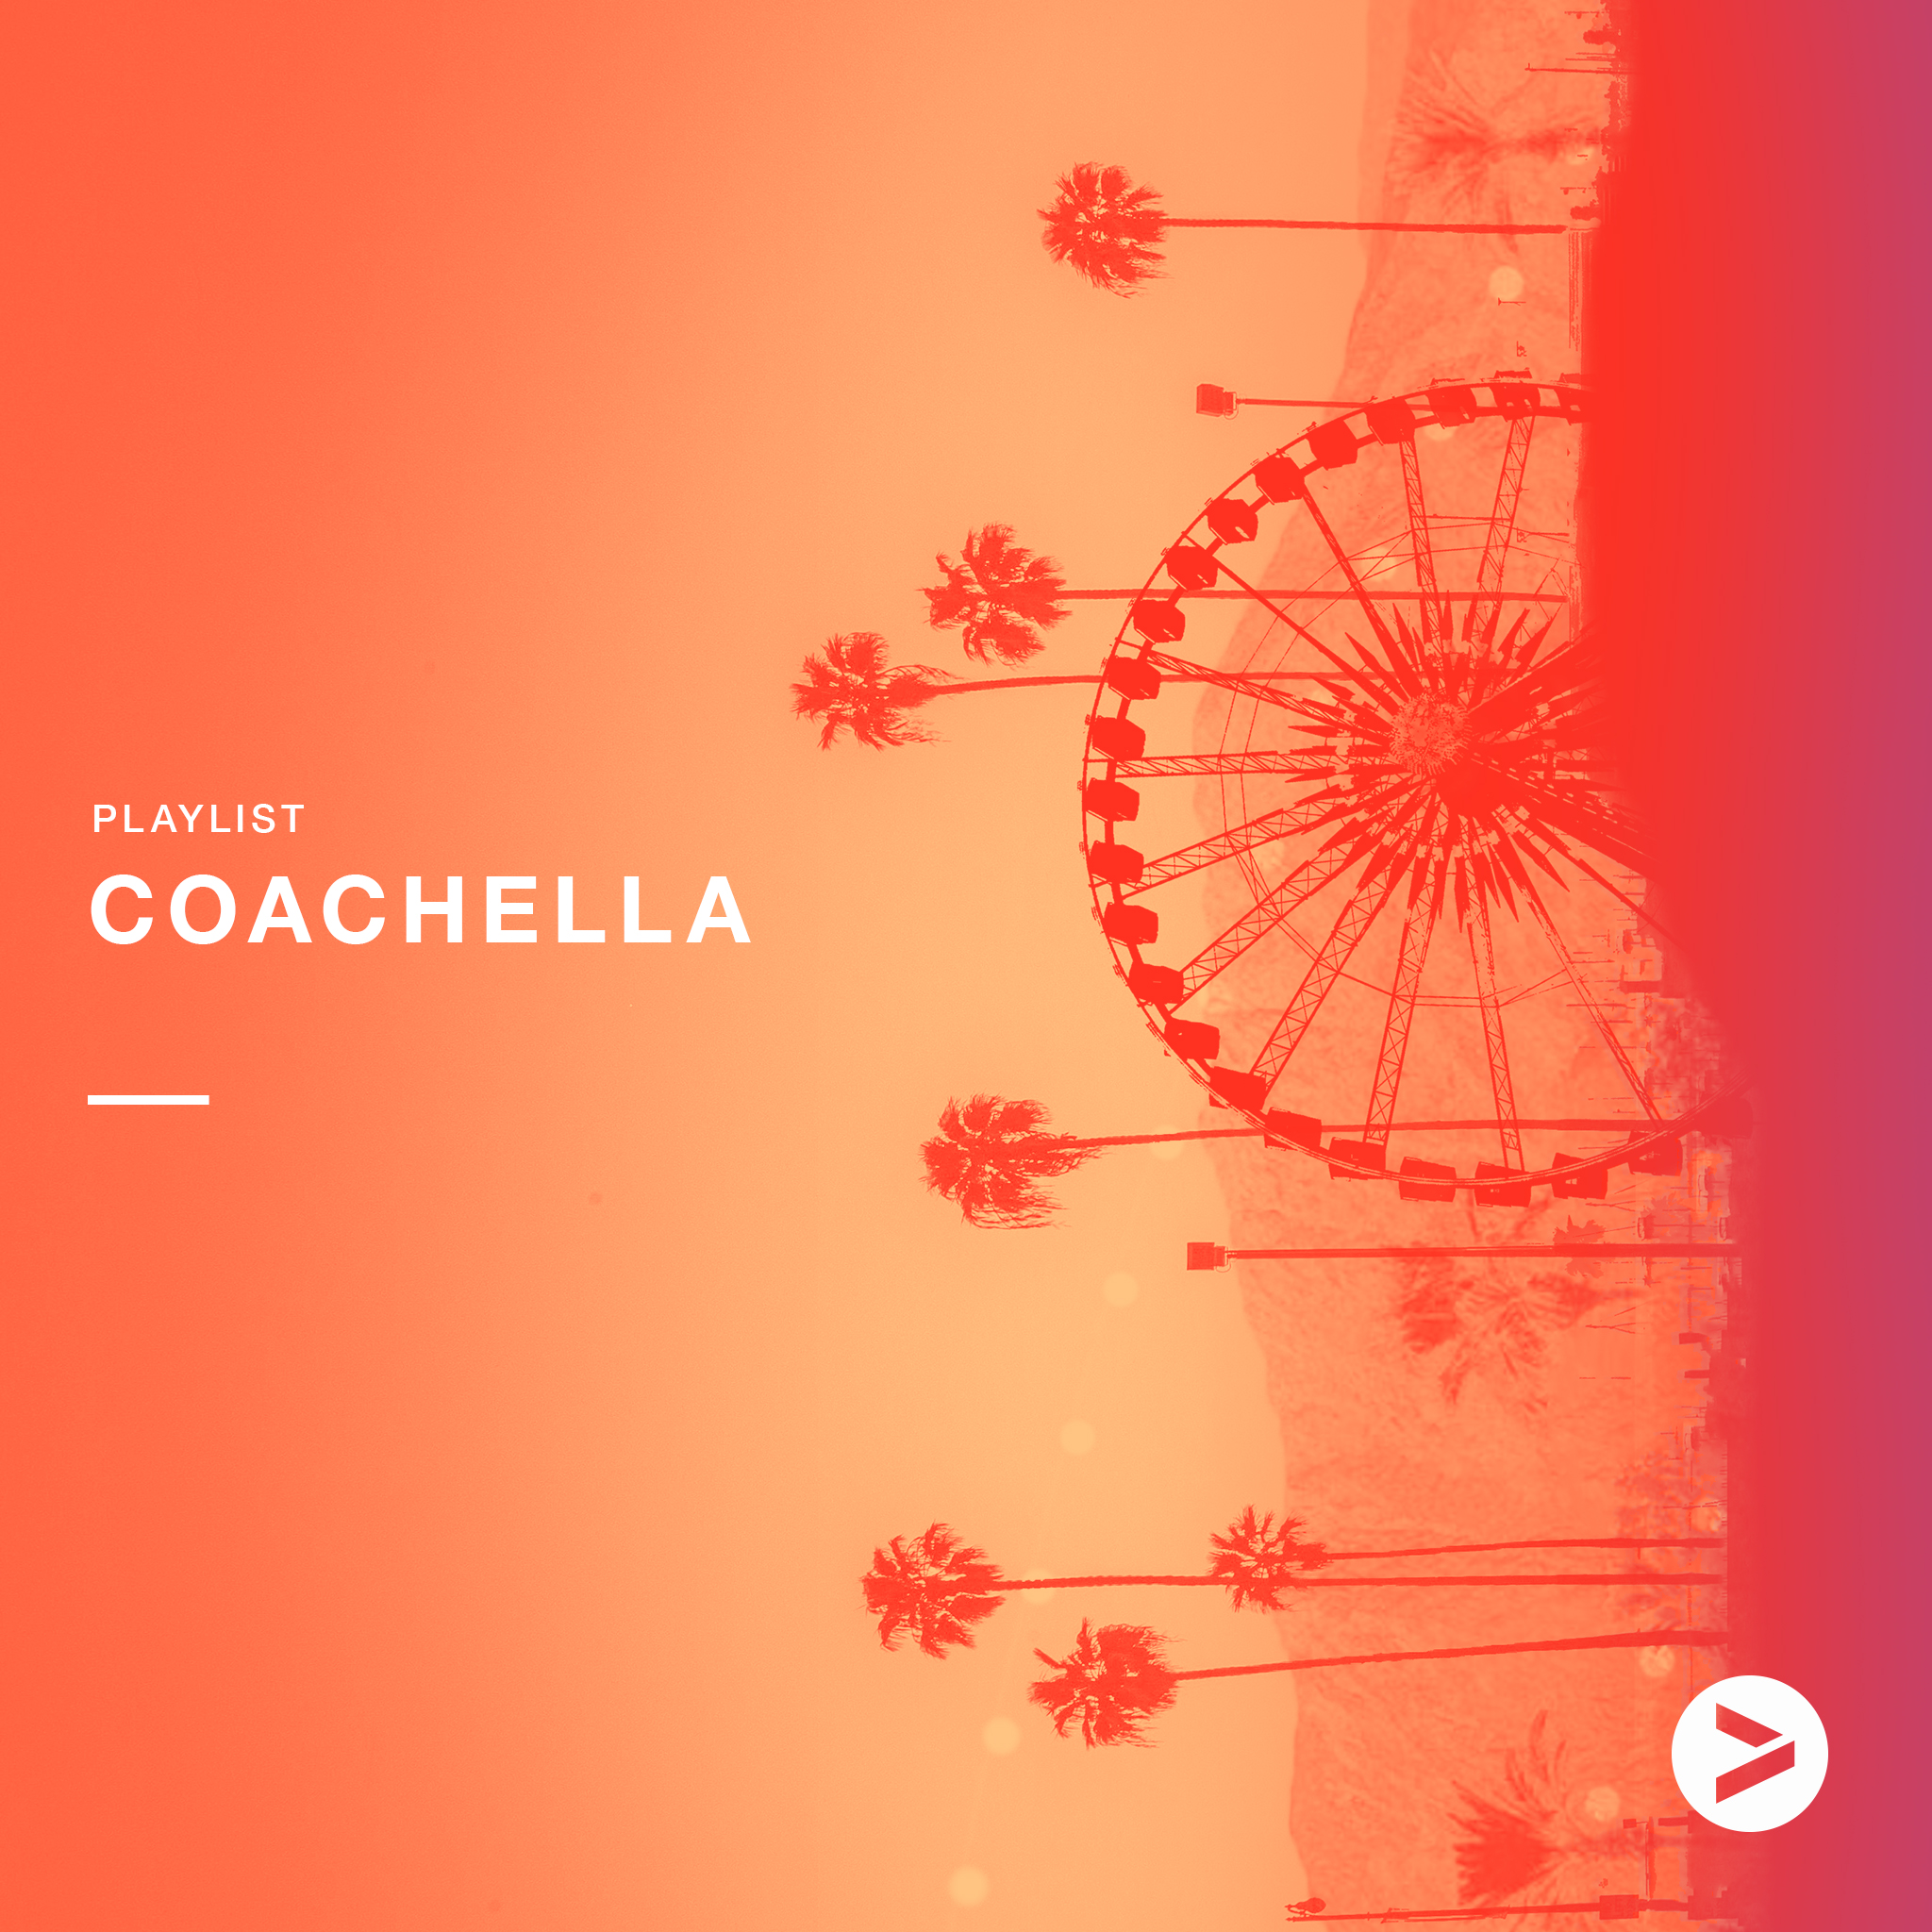 Playlist-Coachella.jpg